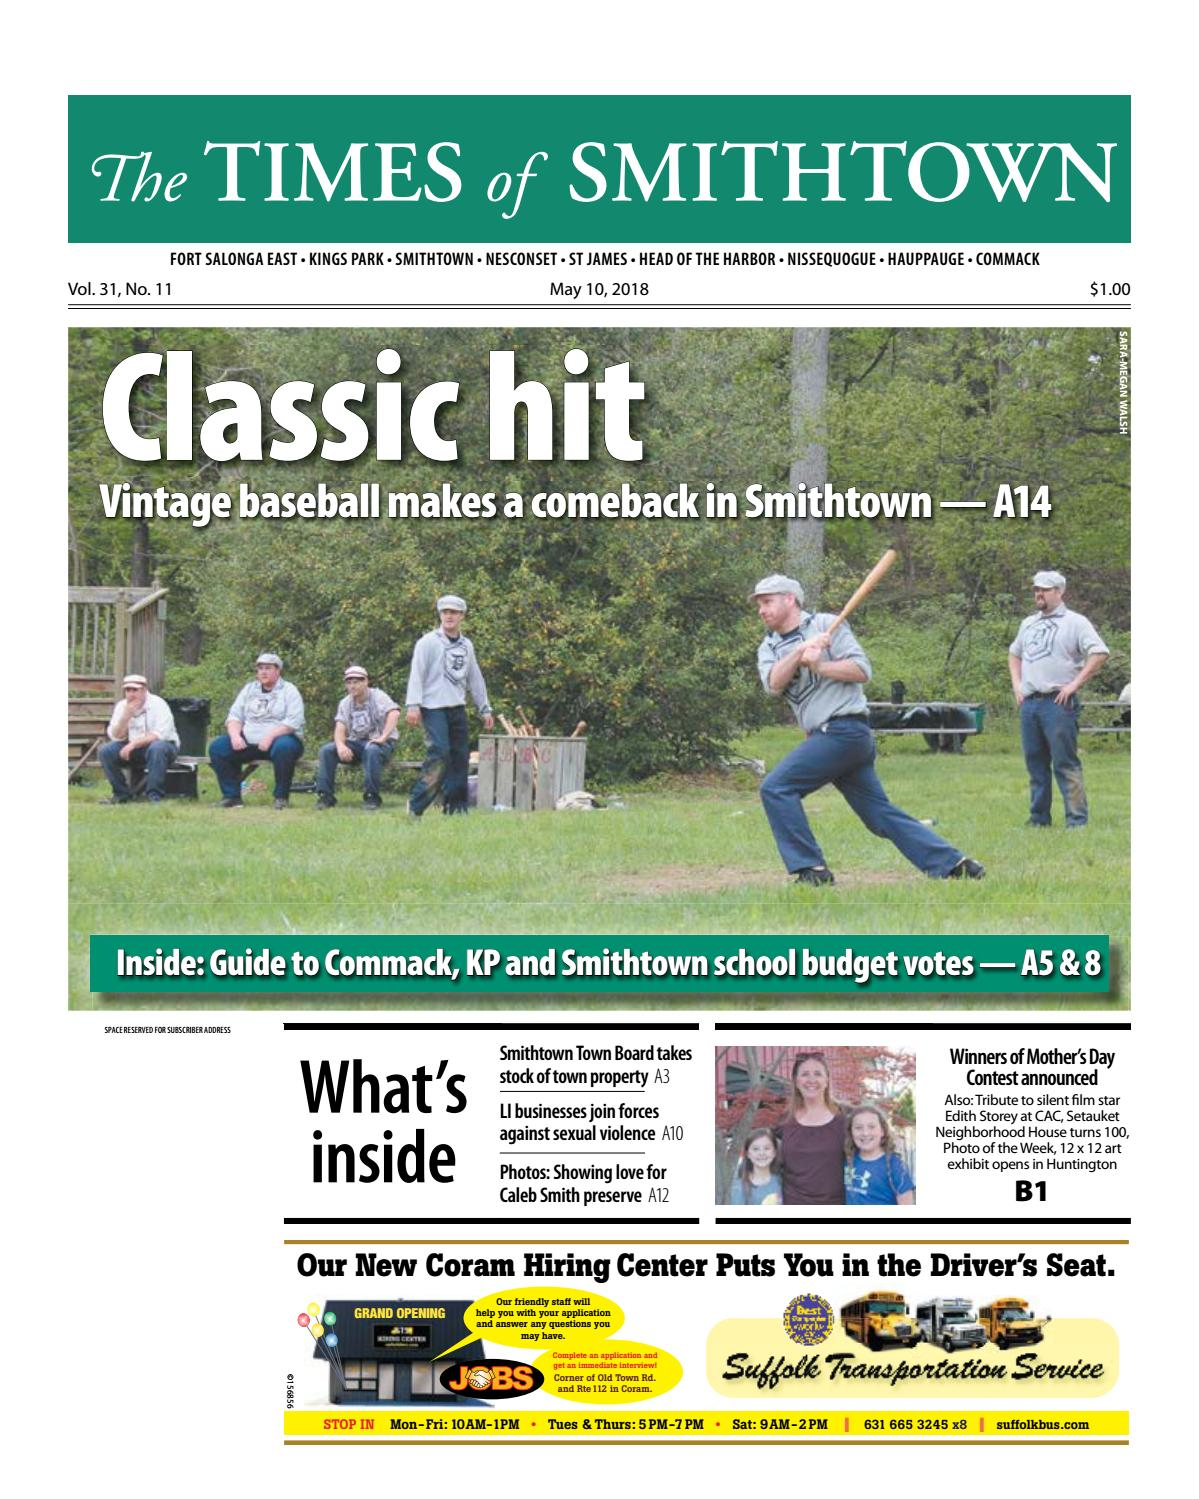 The Times of Smithtown - May 10, 2018 by TBR News Media - issuu